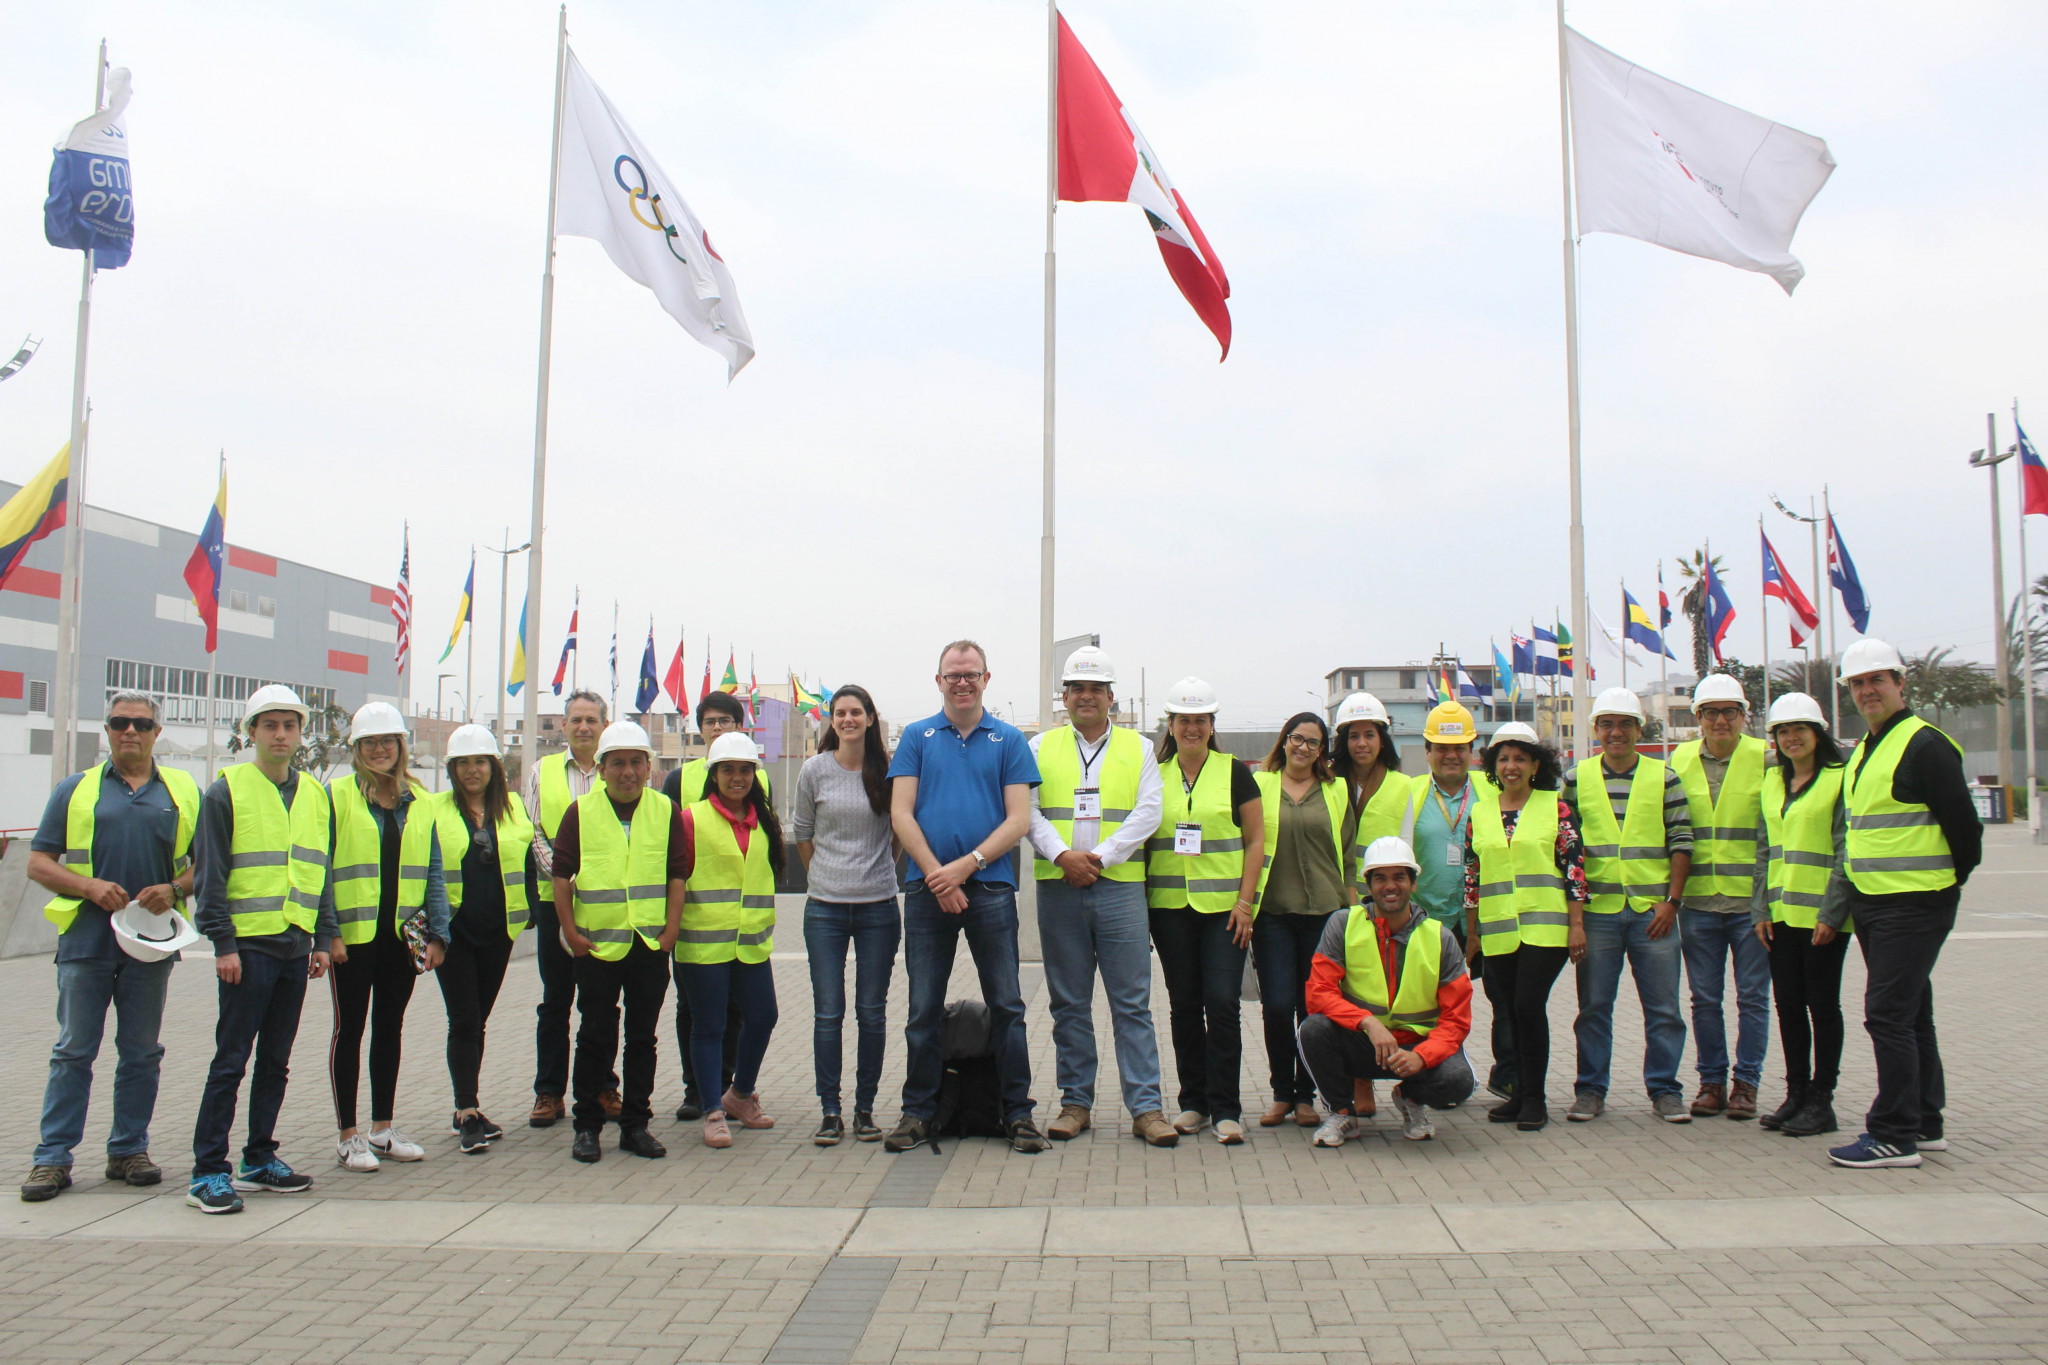 The awareness workshop was organised to promote Para sport and Paralympic events to local and global journalists expected to cover the 2019 Parapan American Games in Lima  ©Lima 2019